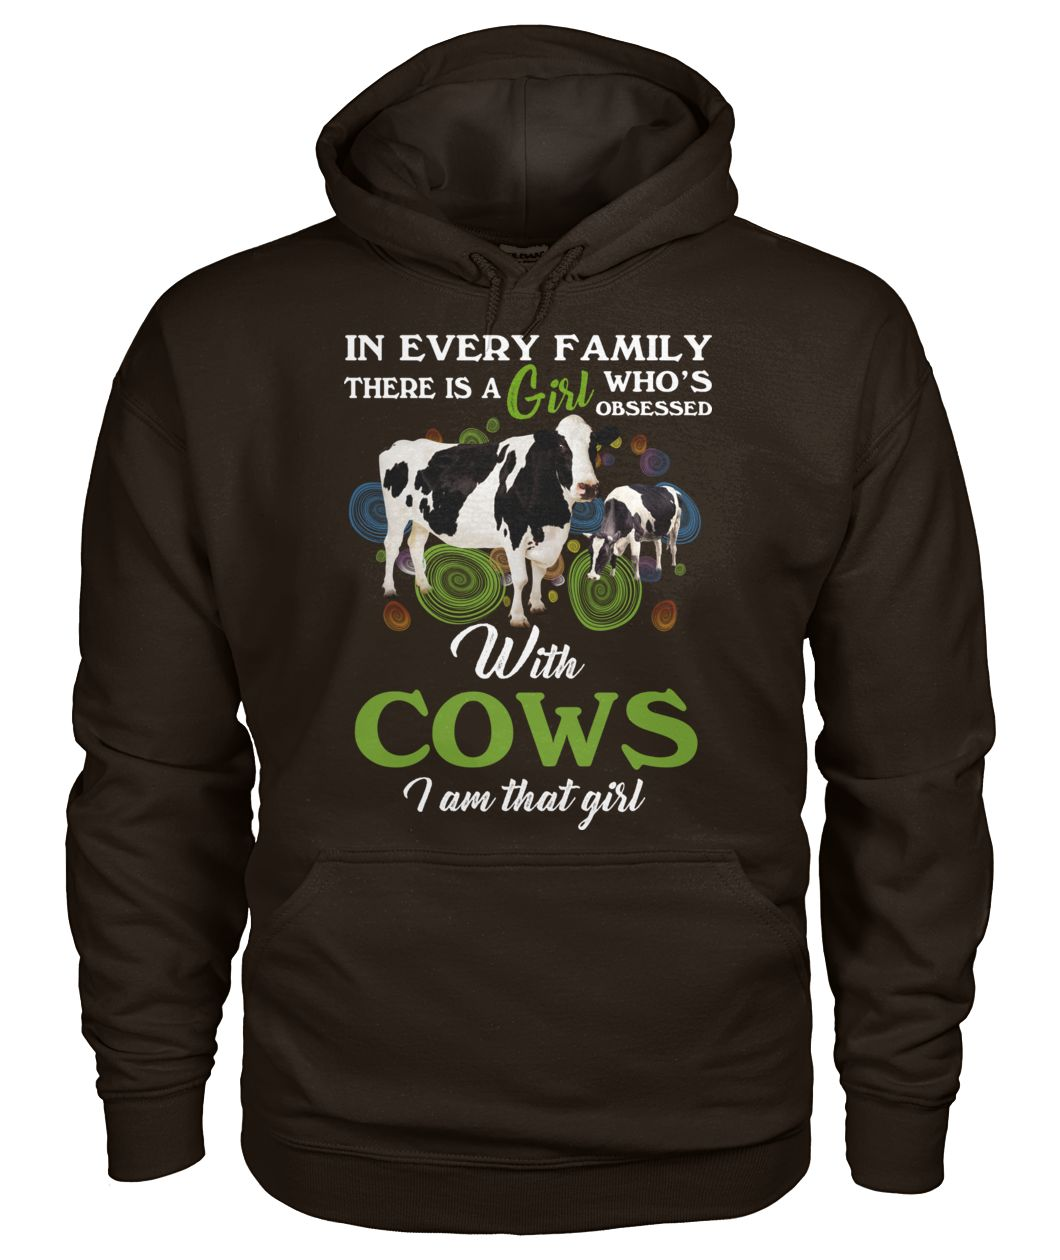 In every family there is a girl who's obsessed with cows I am that girl gildan hoodie